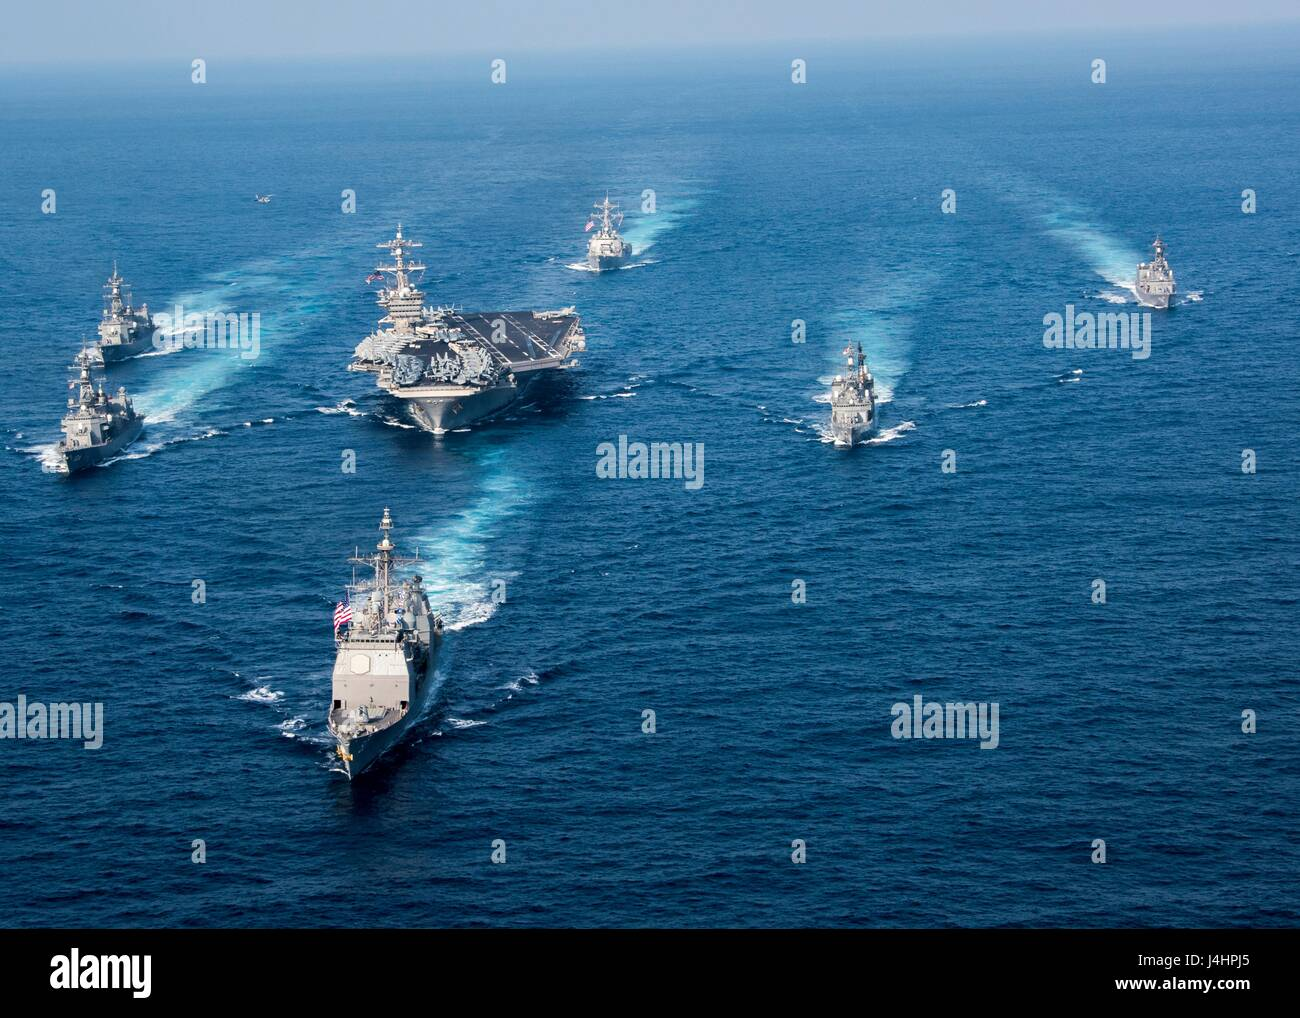 The USN Ticonderoga-class guided-missile cruiser USS Lake Champlain leads U.S. and Japanese warships in formation Stock Photo